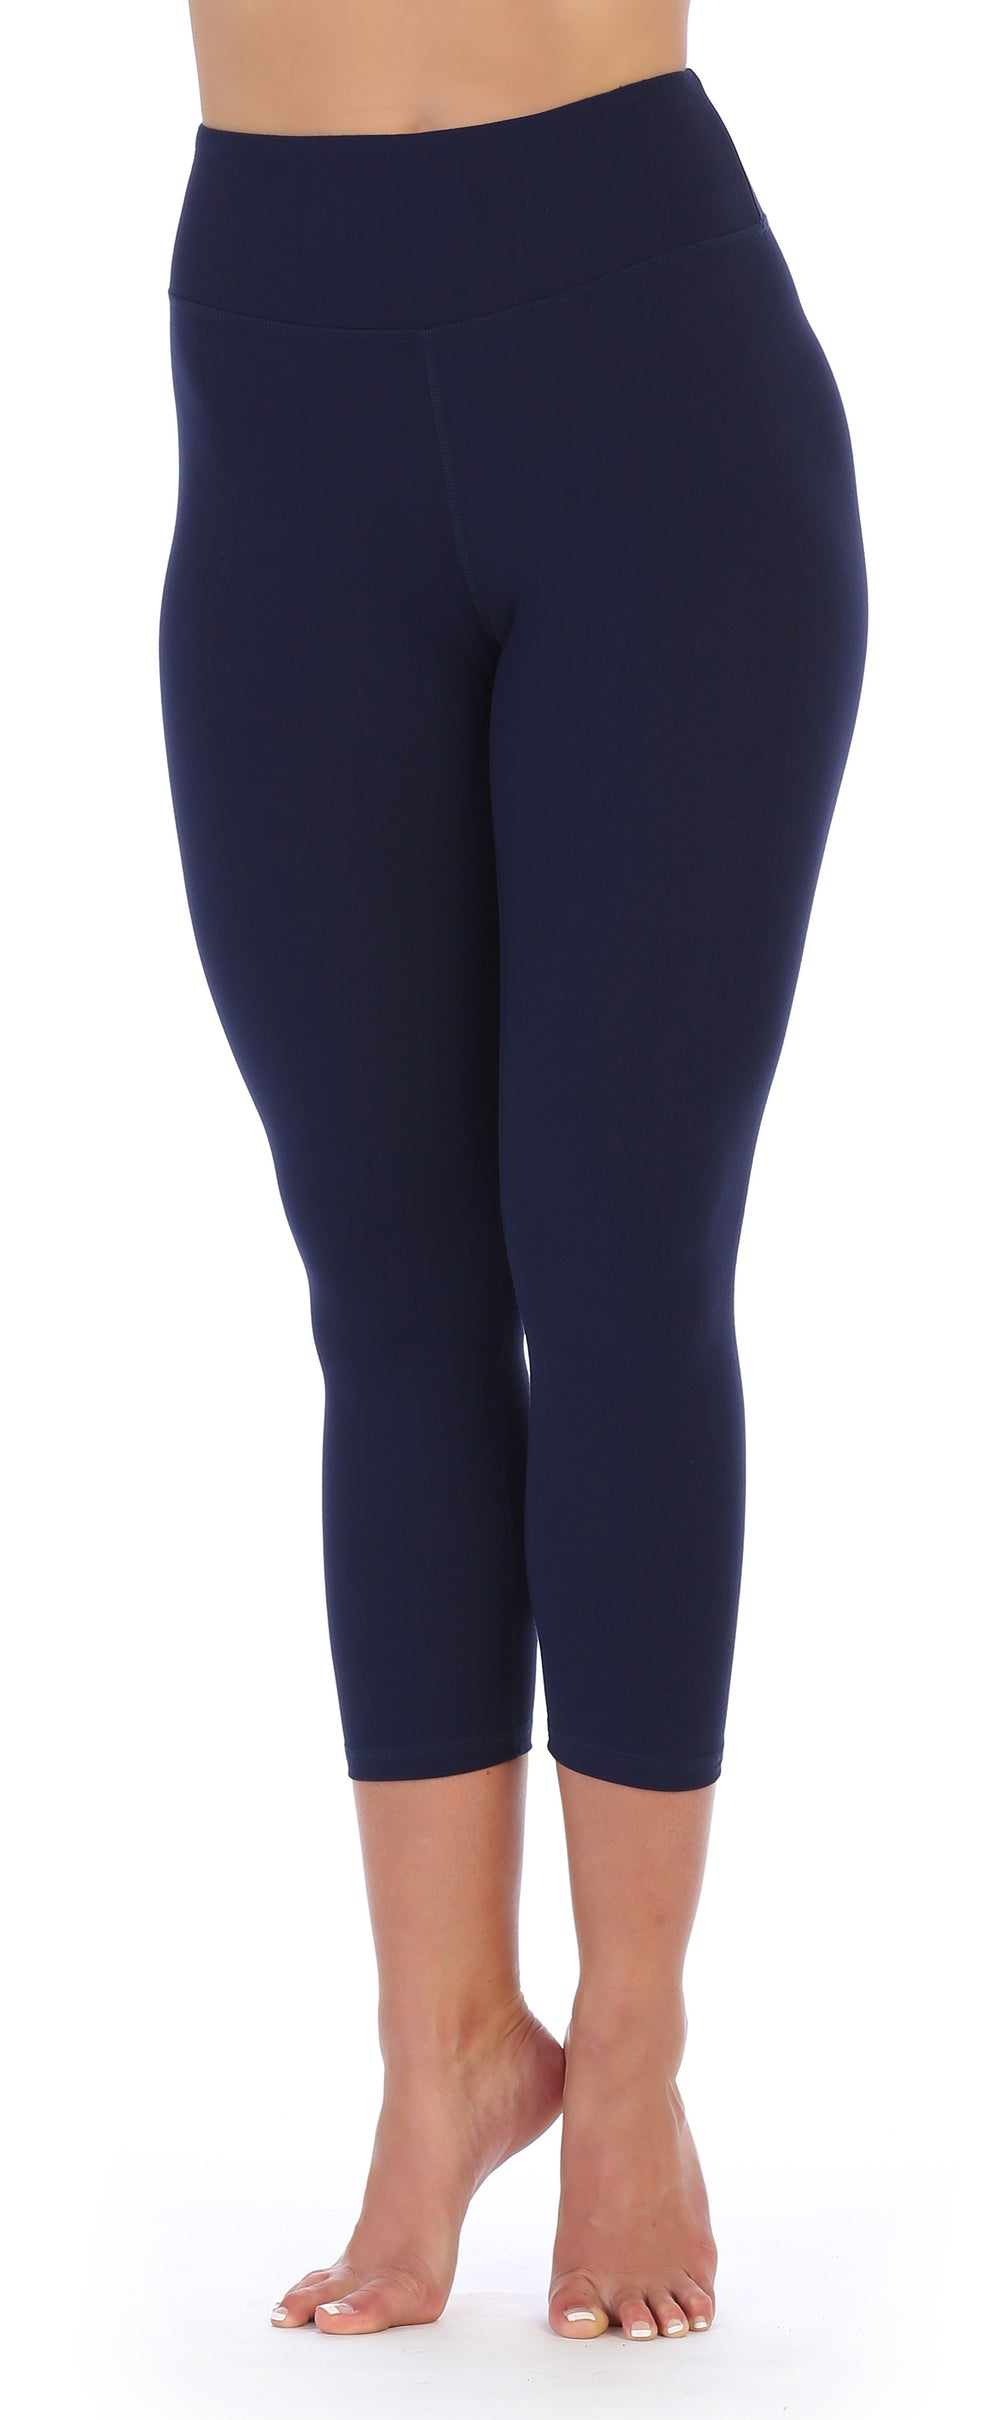 Navy-Compression 3/4 Length Workout Leggings-front image